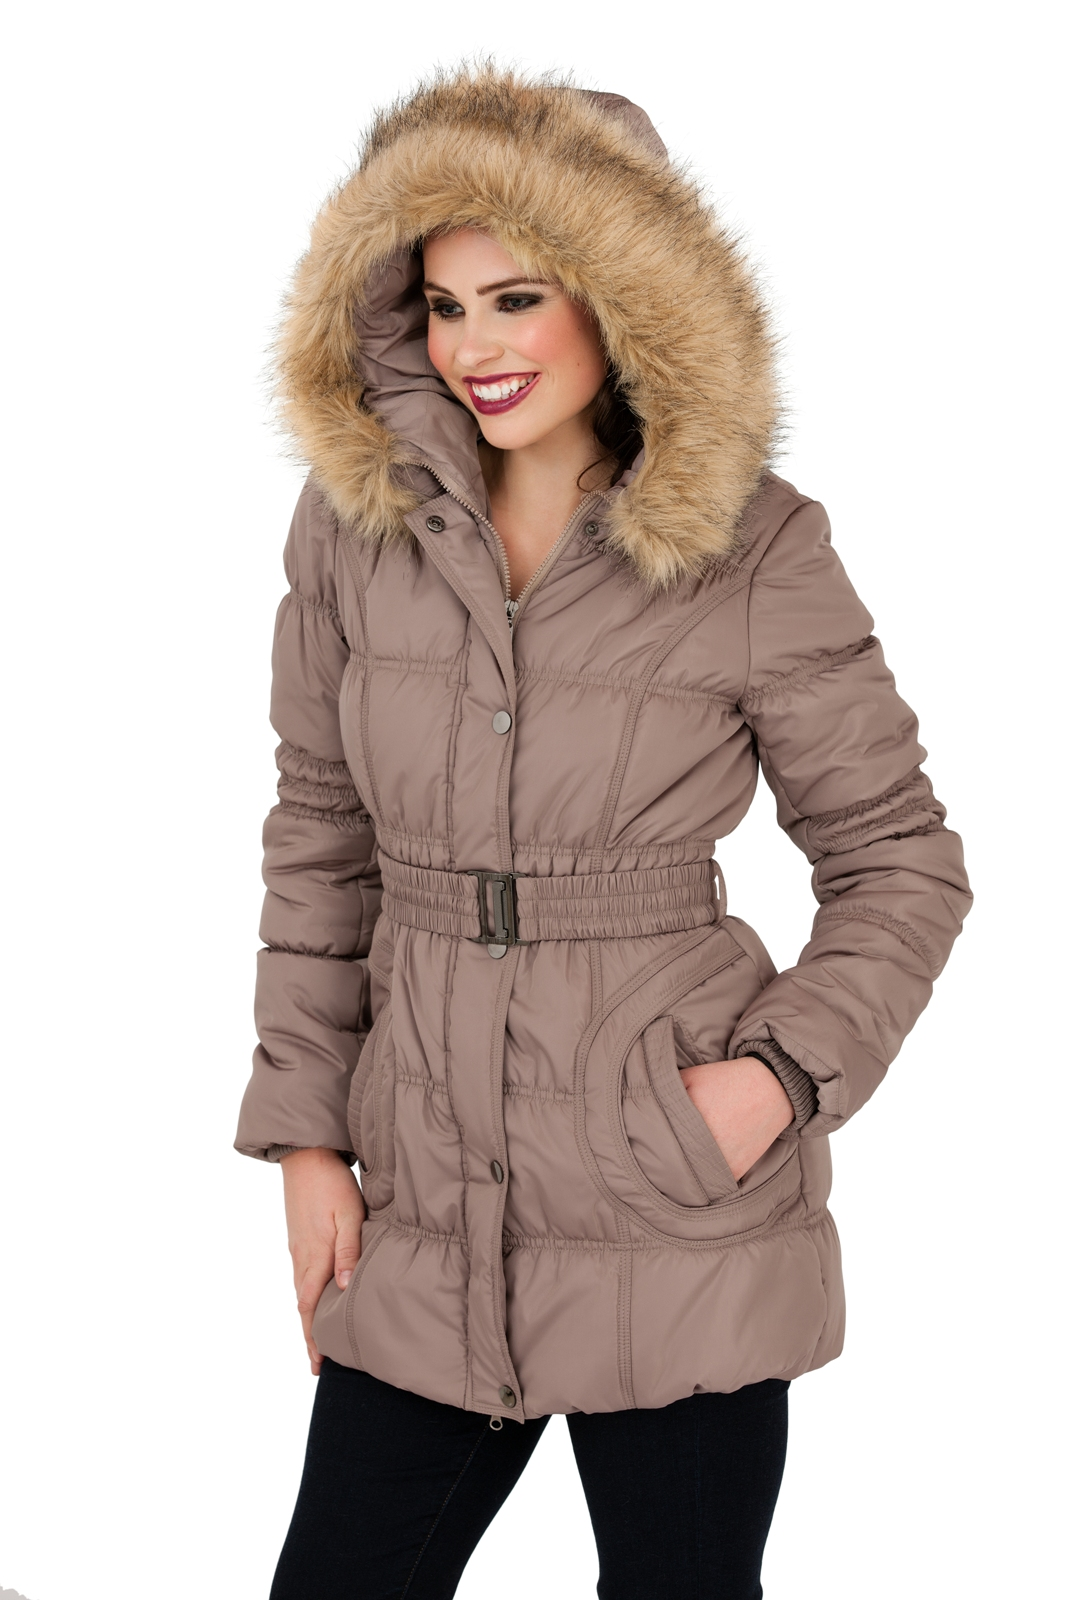 Womens hooded parka coats